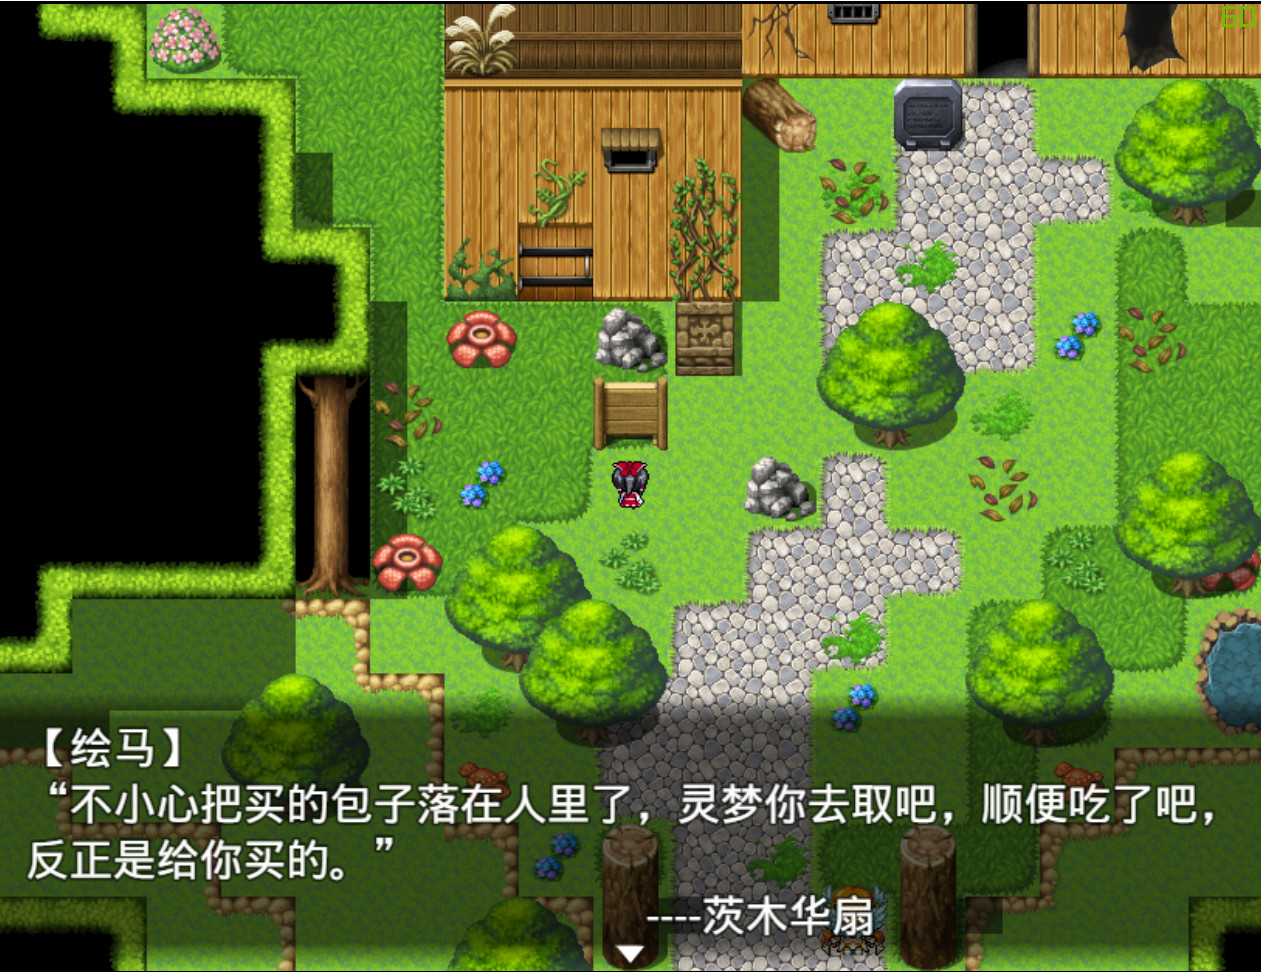 东方幻昼梦~ Touhou Fantasy Day screenshot